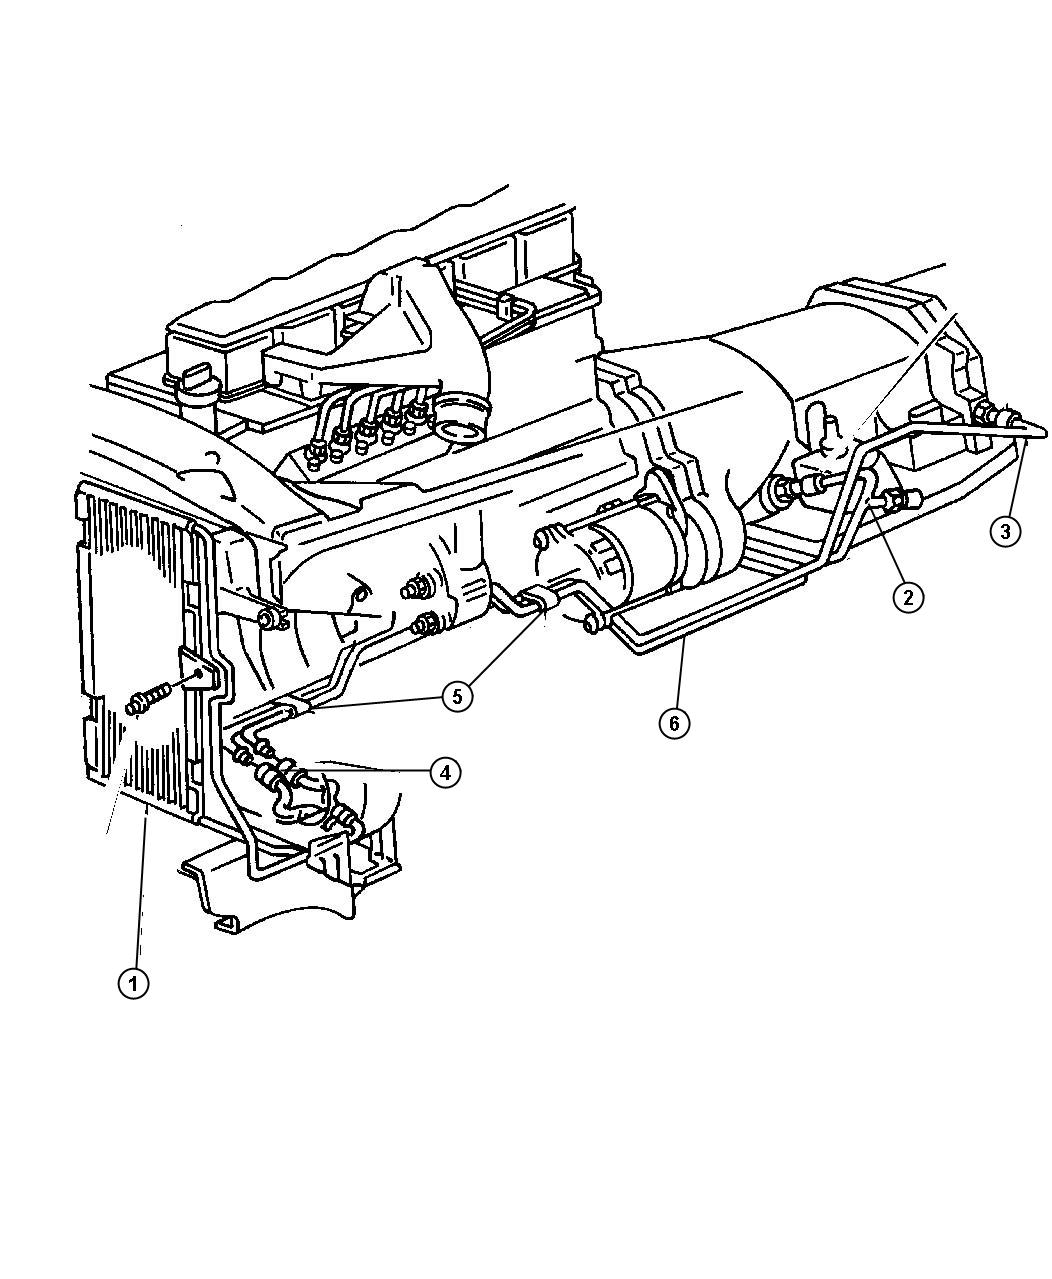 00i52608 wiring diagrams for 2005 dodge ram 1500 the wiring diagram 1999 dodge ram 1500 transmission wiring diagram at cita.asia